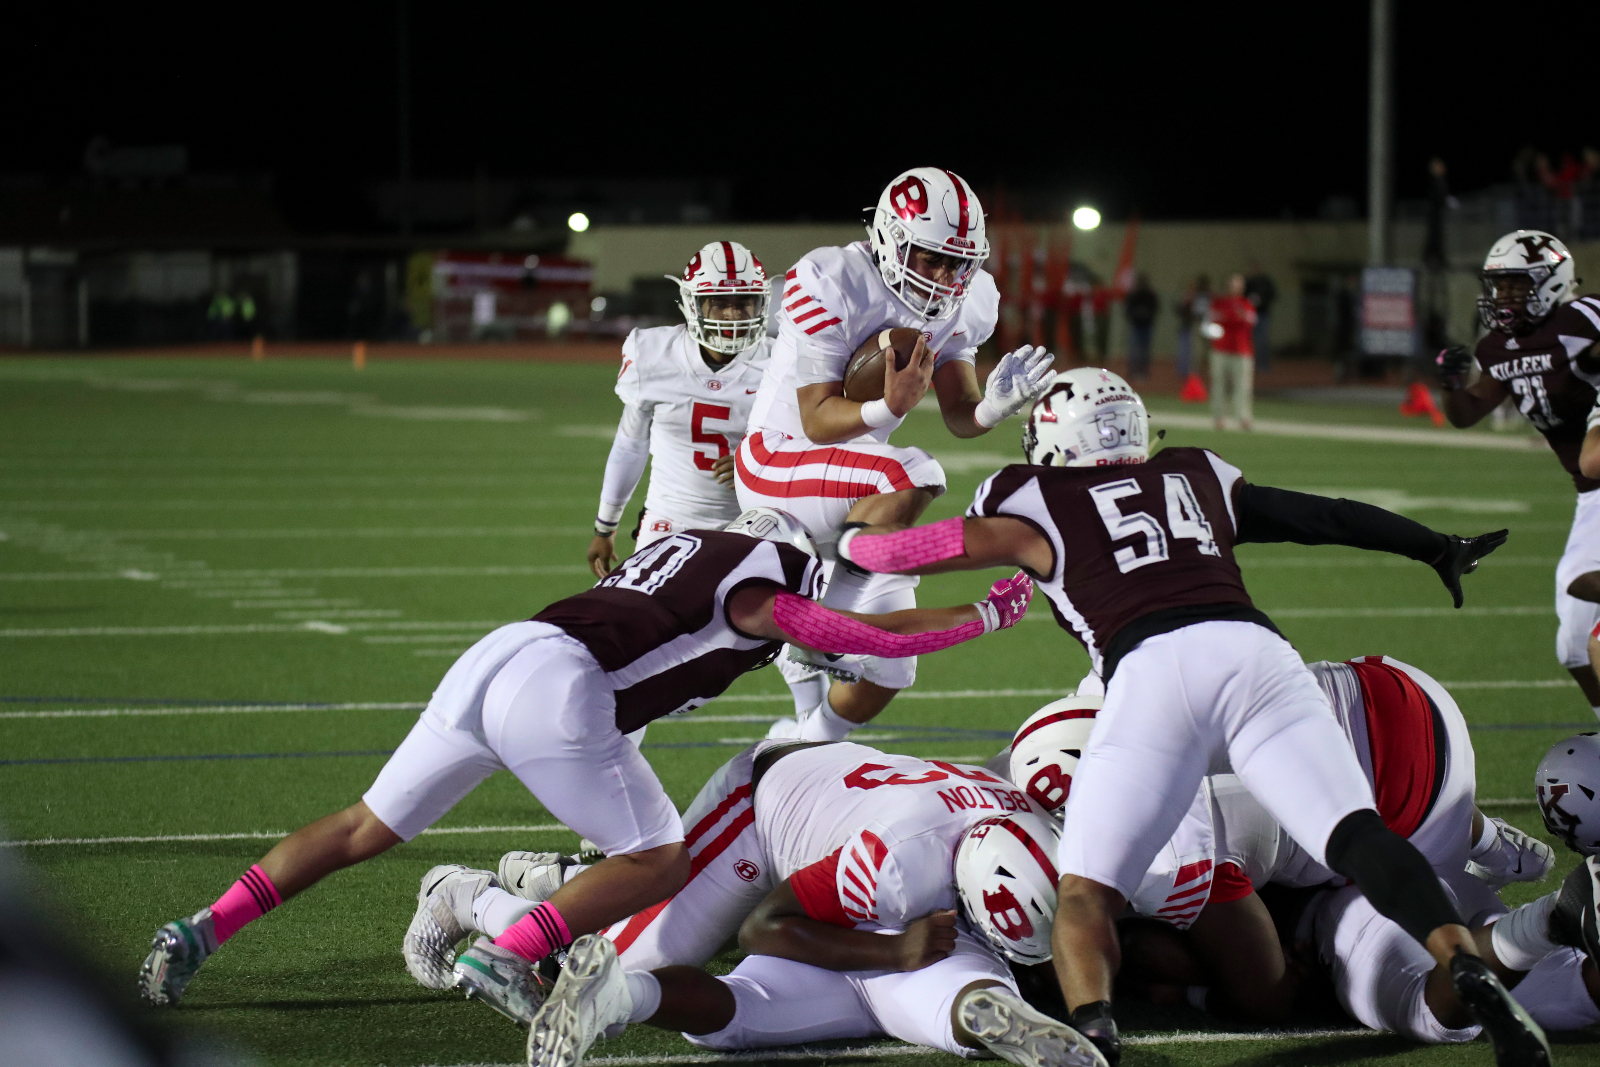 Tigers unable to catch up after fast Killeen start, fall 44-17